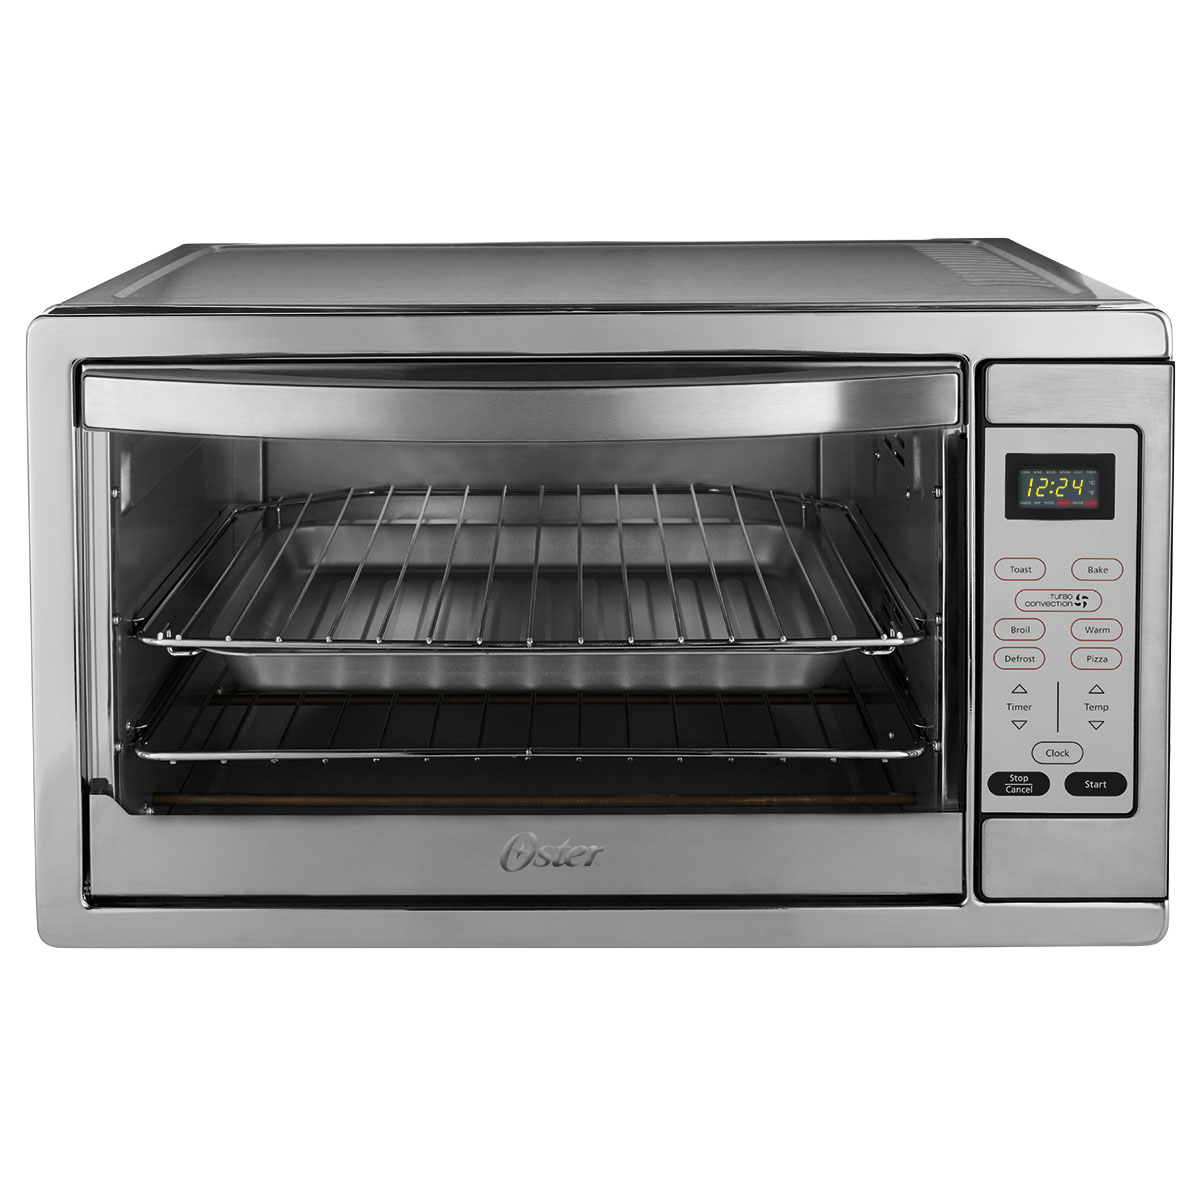 Oster Extra Large Digital Countertop Oven TSSTTVDGXL 1